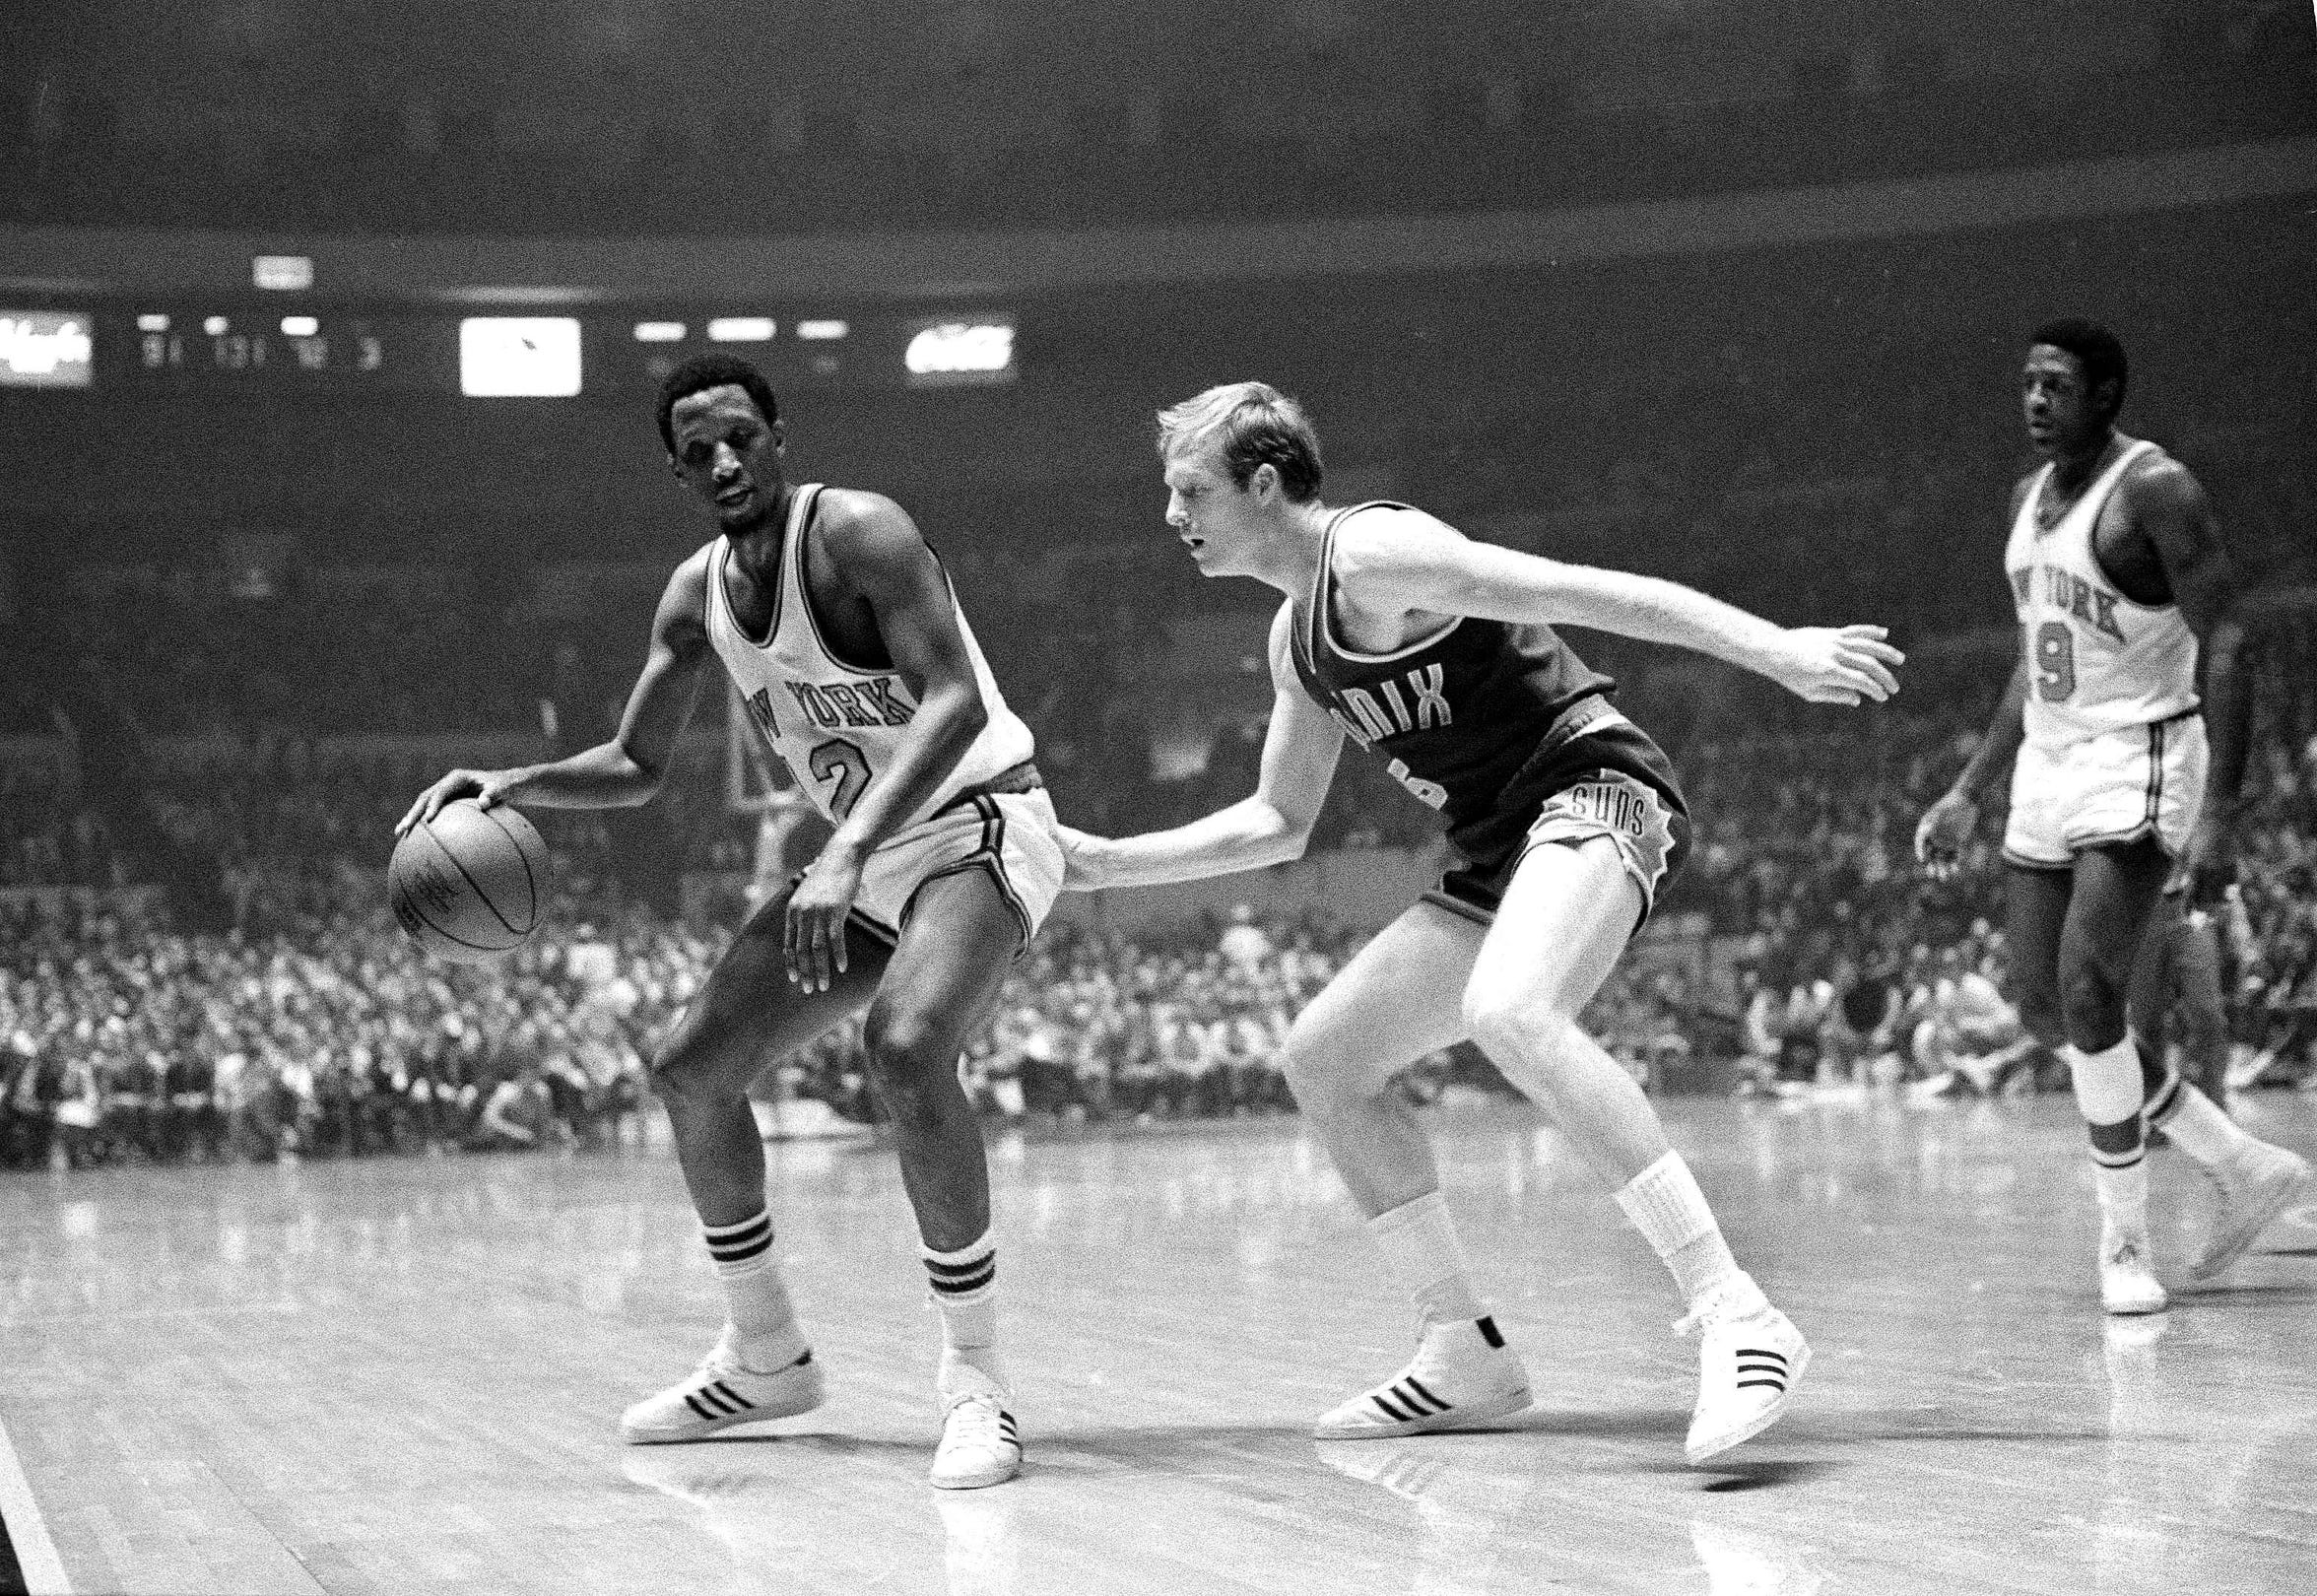 Dick Van Arsdale (right) guards New York Knicks' Dick Barnett at Madison Square Garden in 1969.